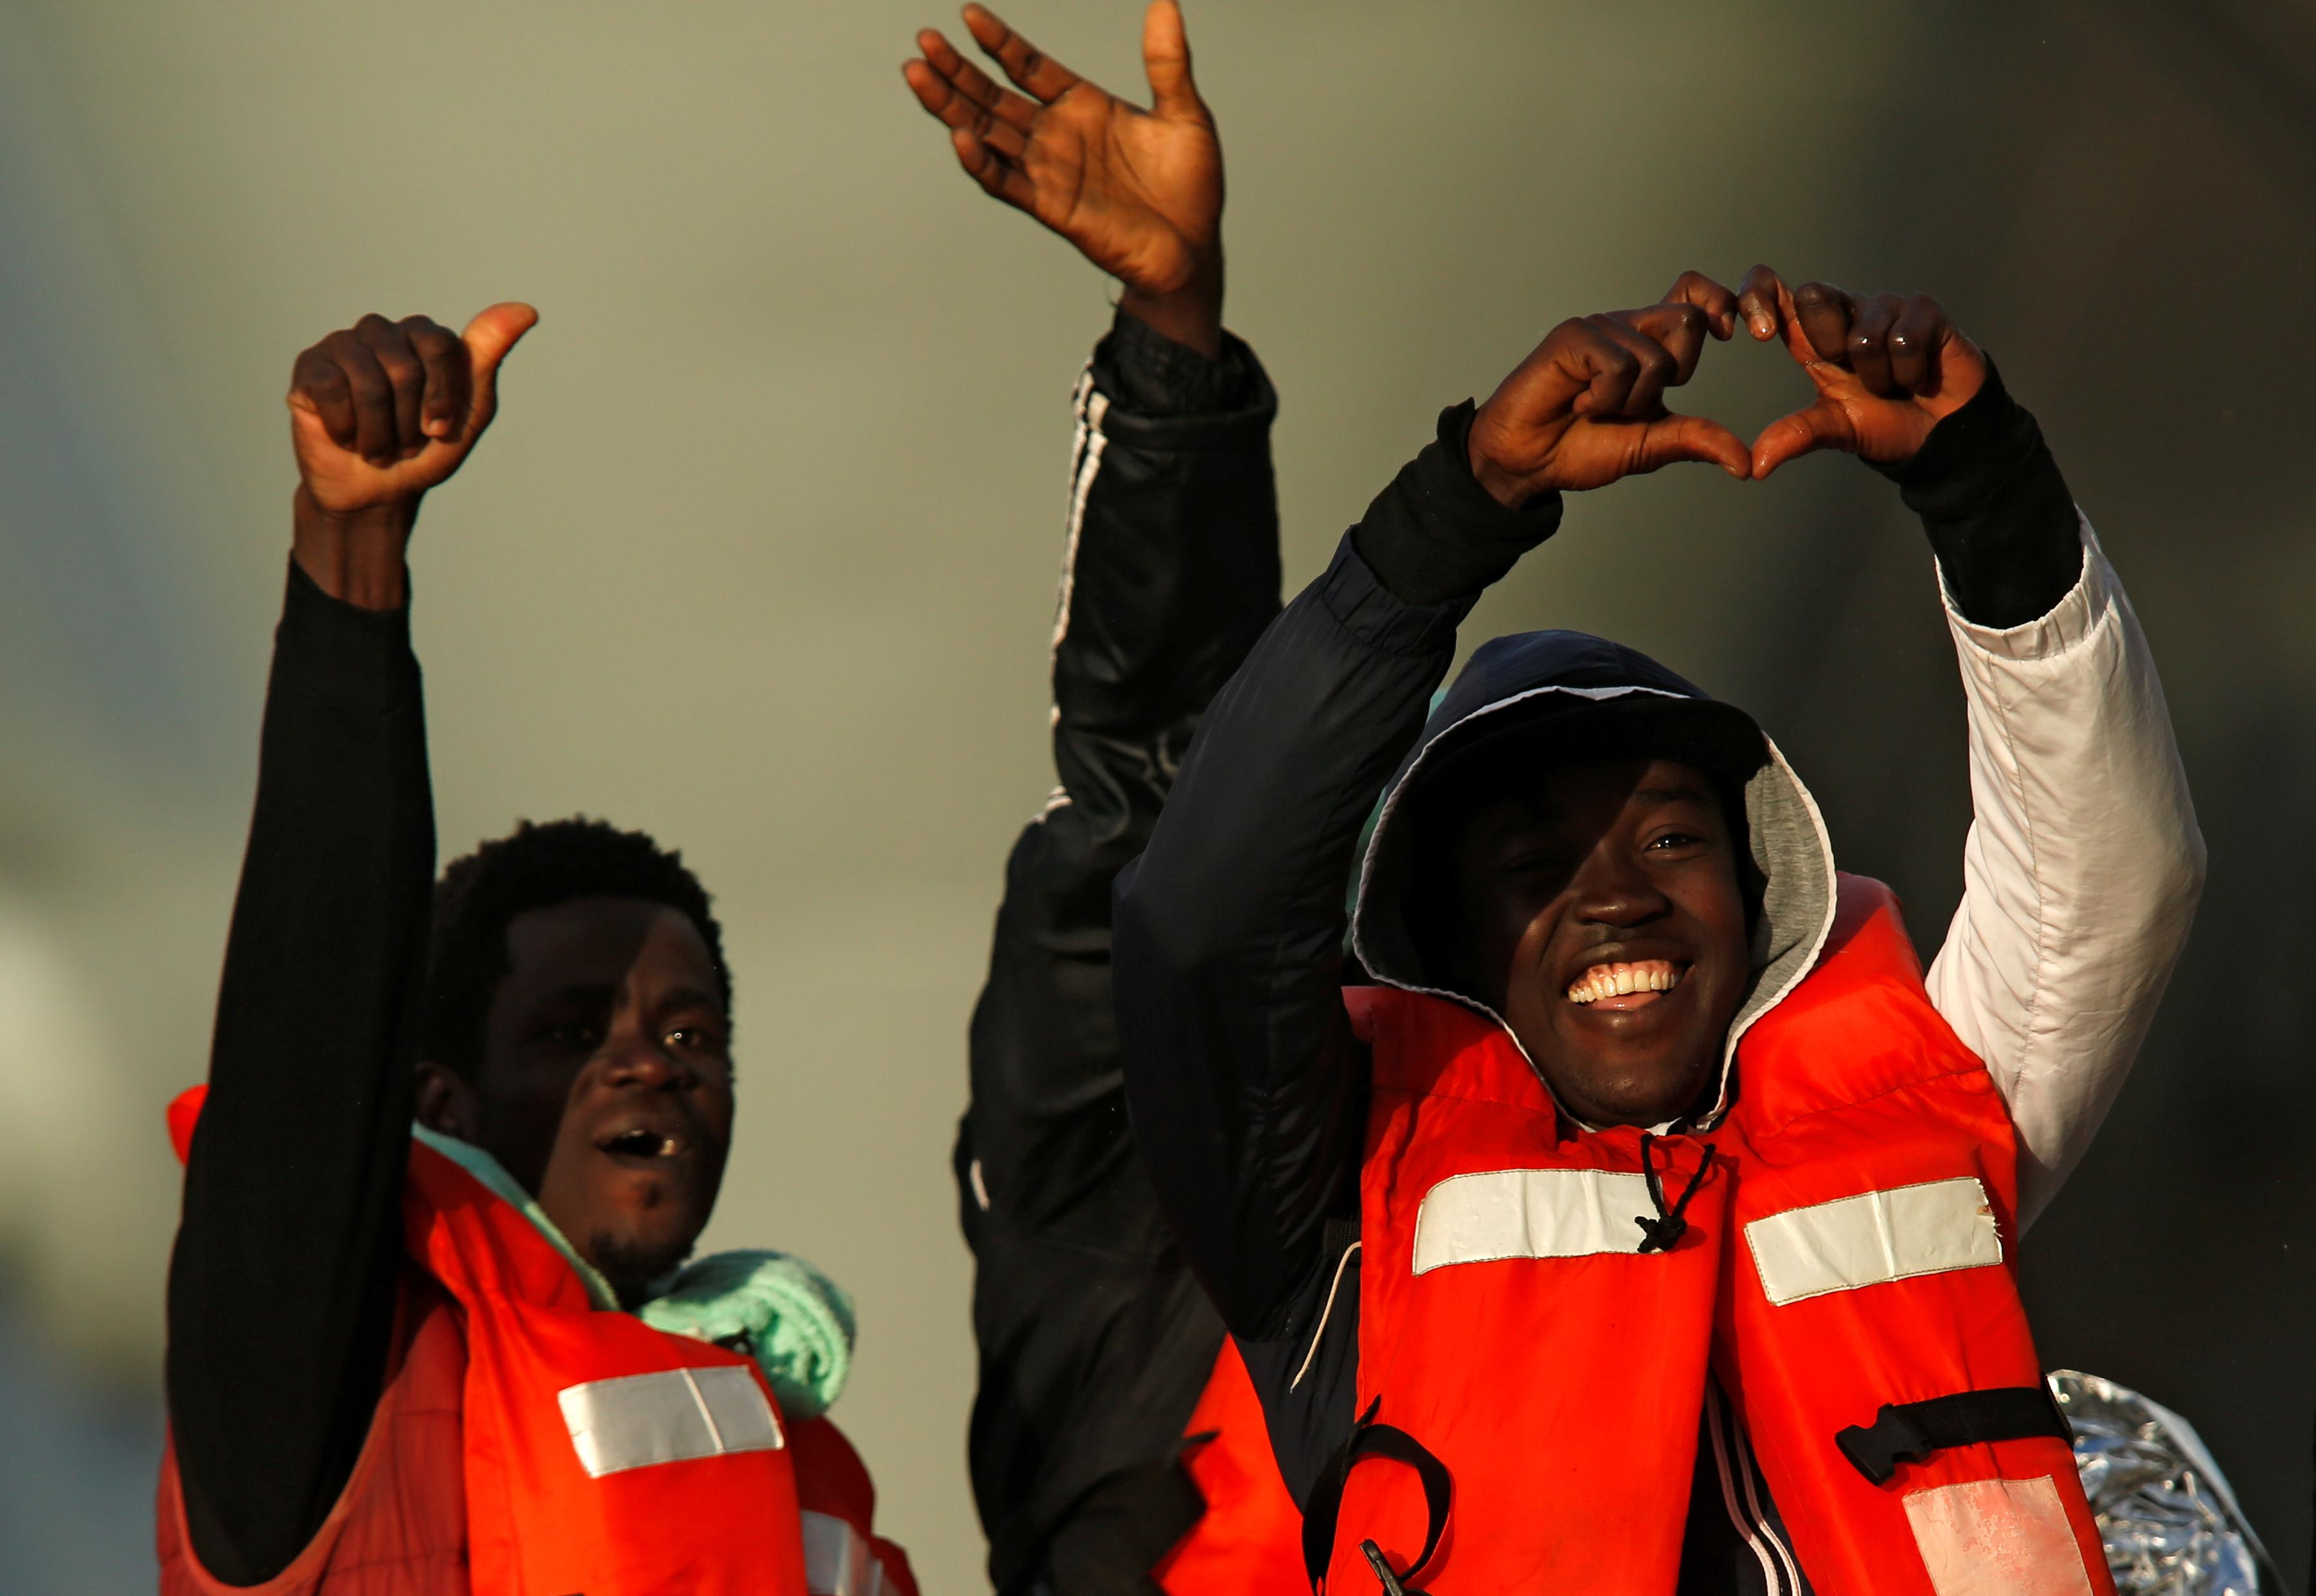 Malta disembarks migrants sparking Italy government clash